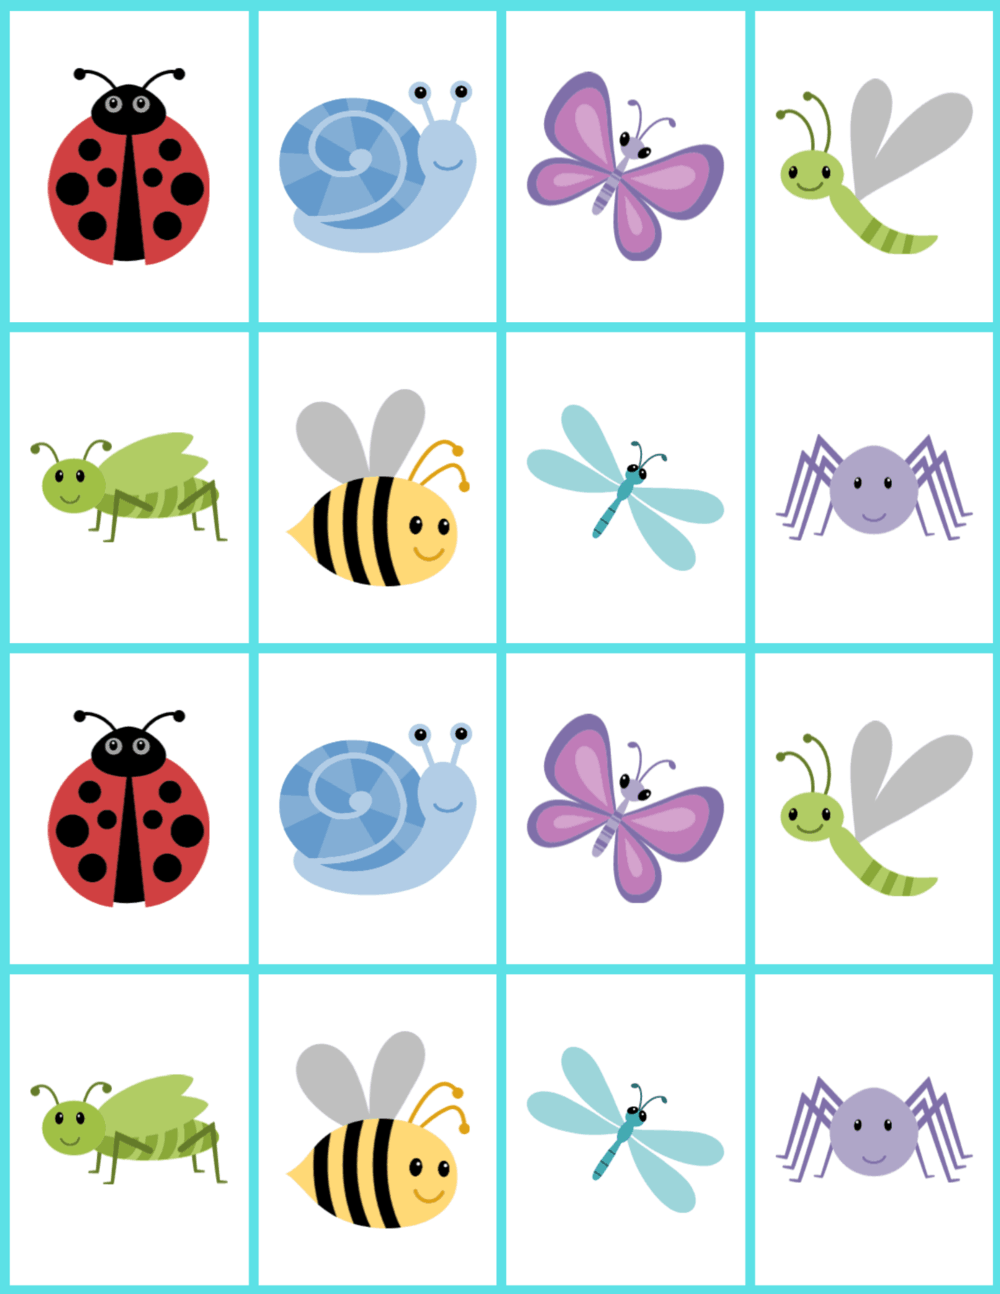 Cute color bugs for a memory matching game.